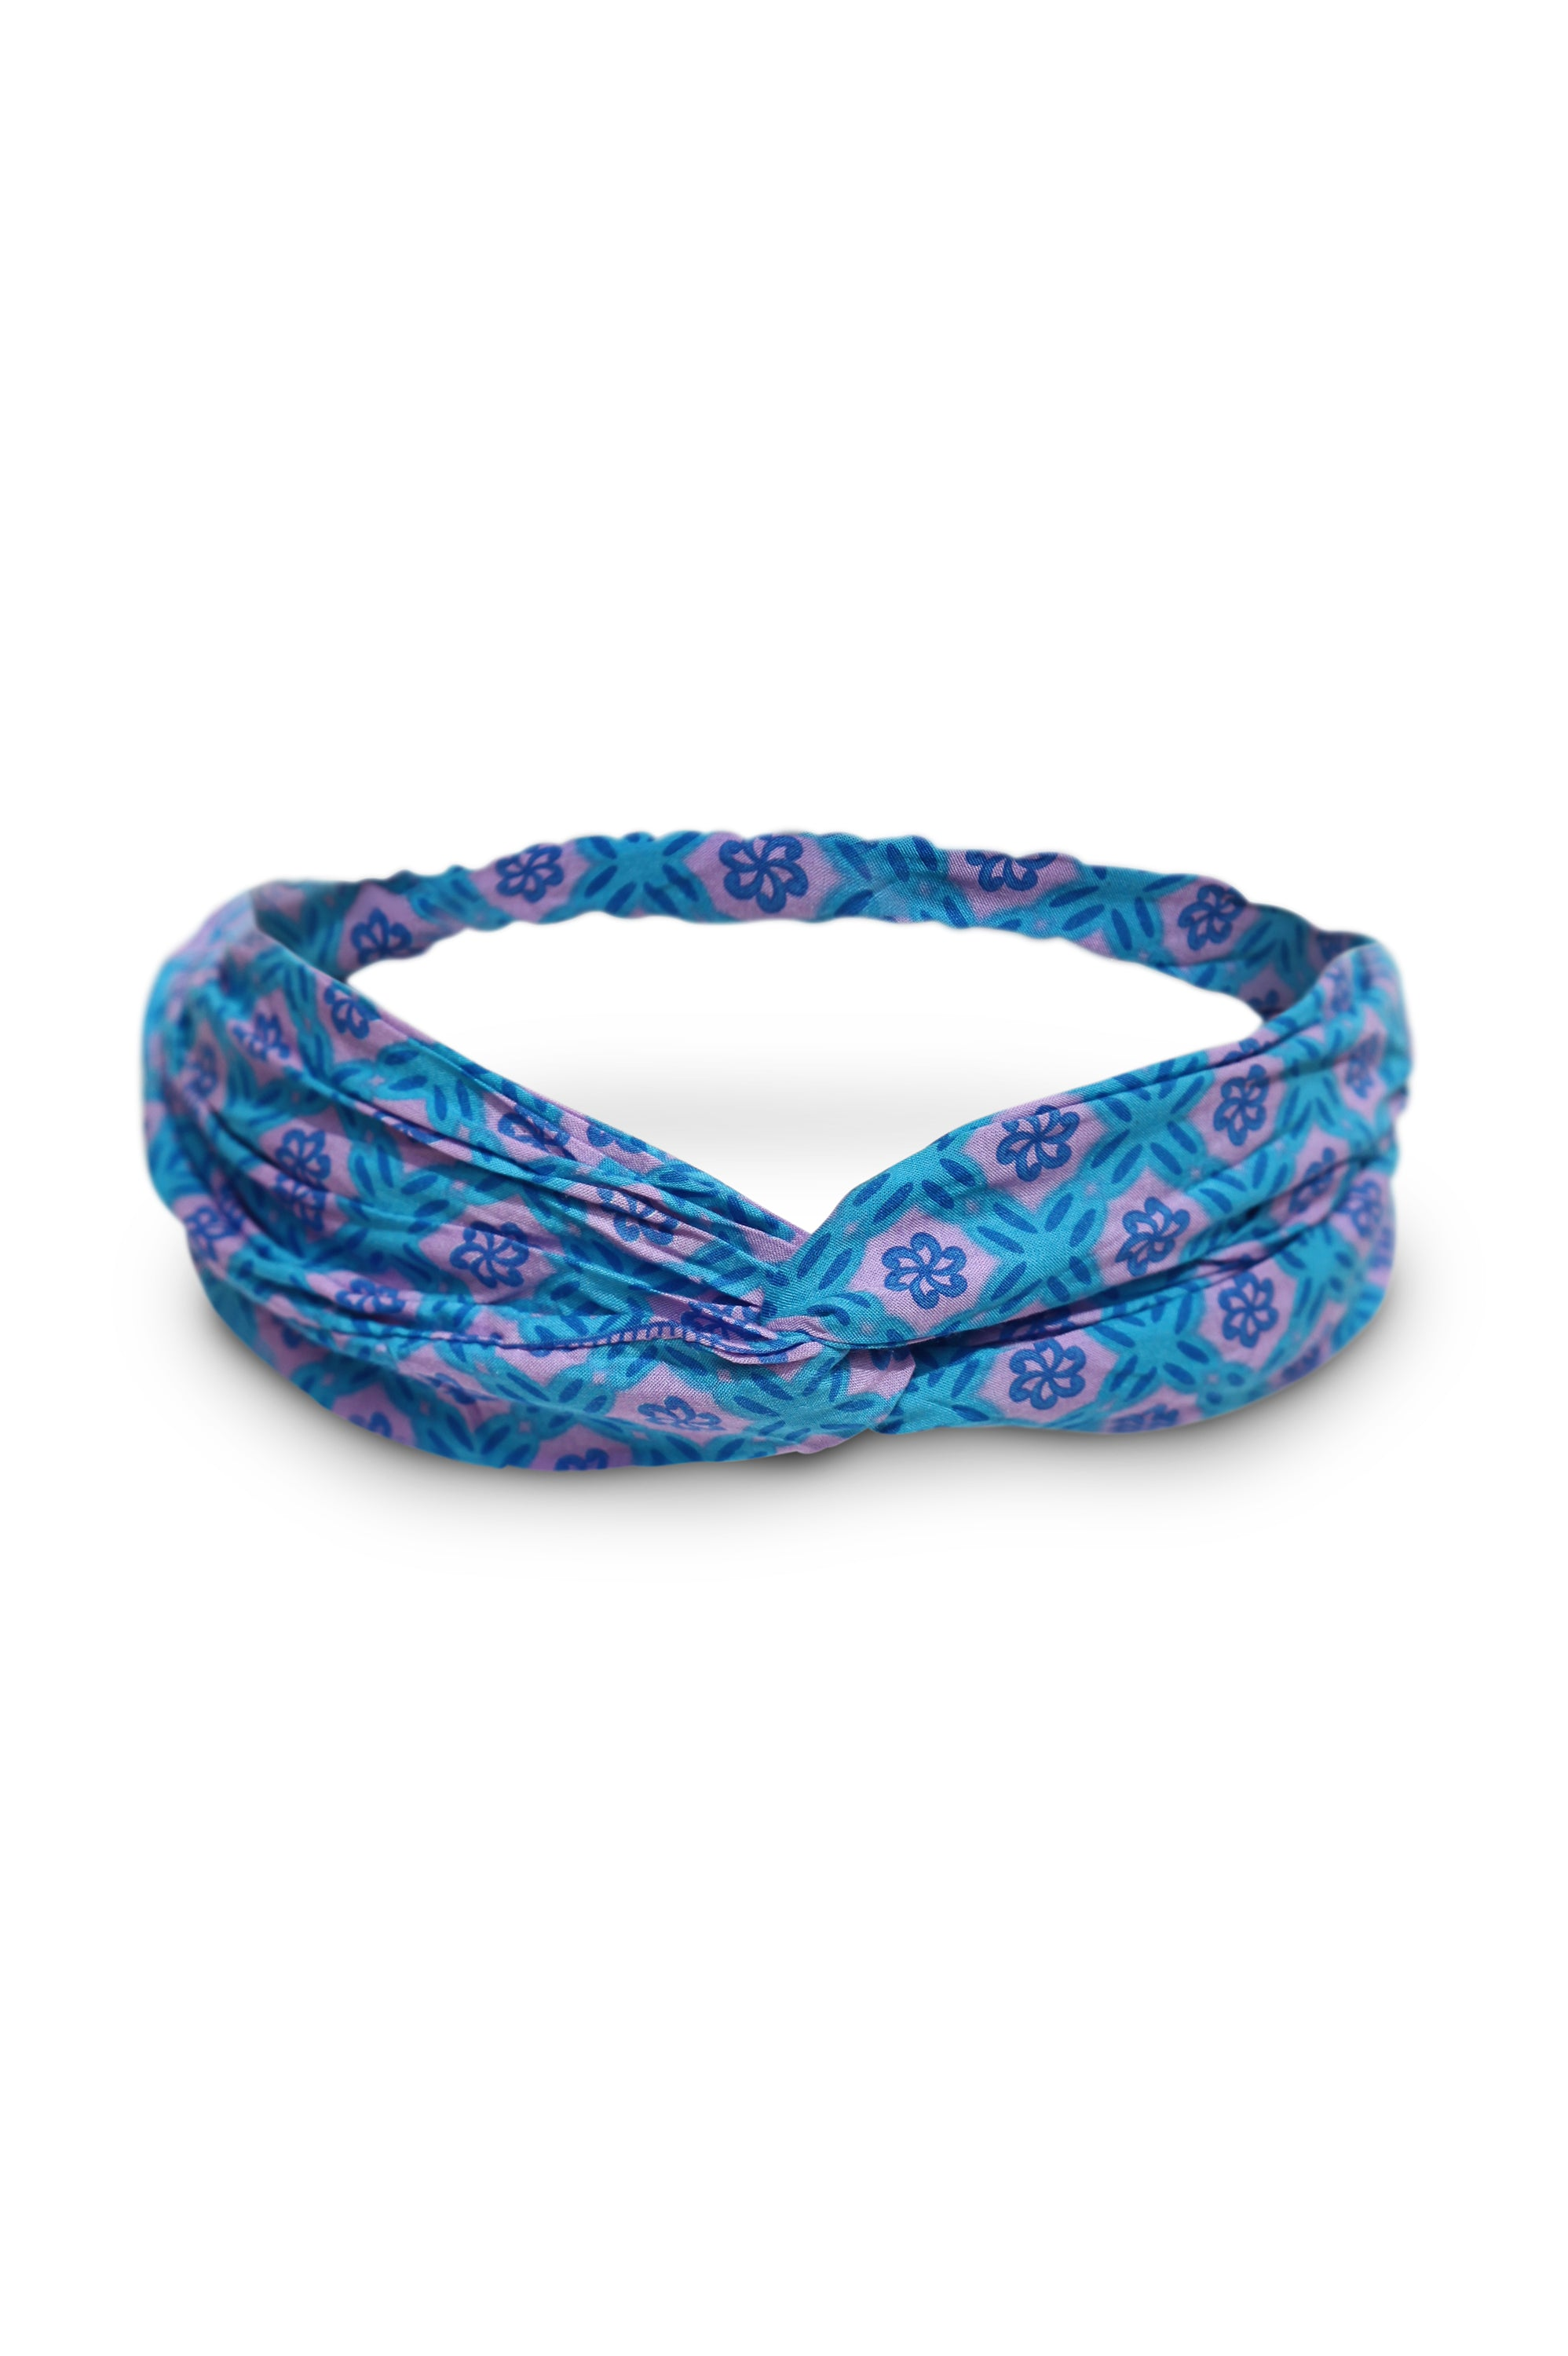 Blue Lilac Headband - Saffron Road